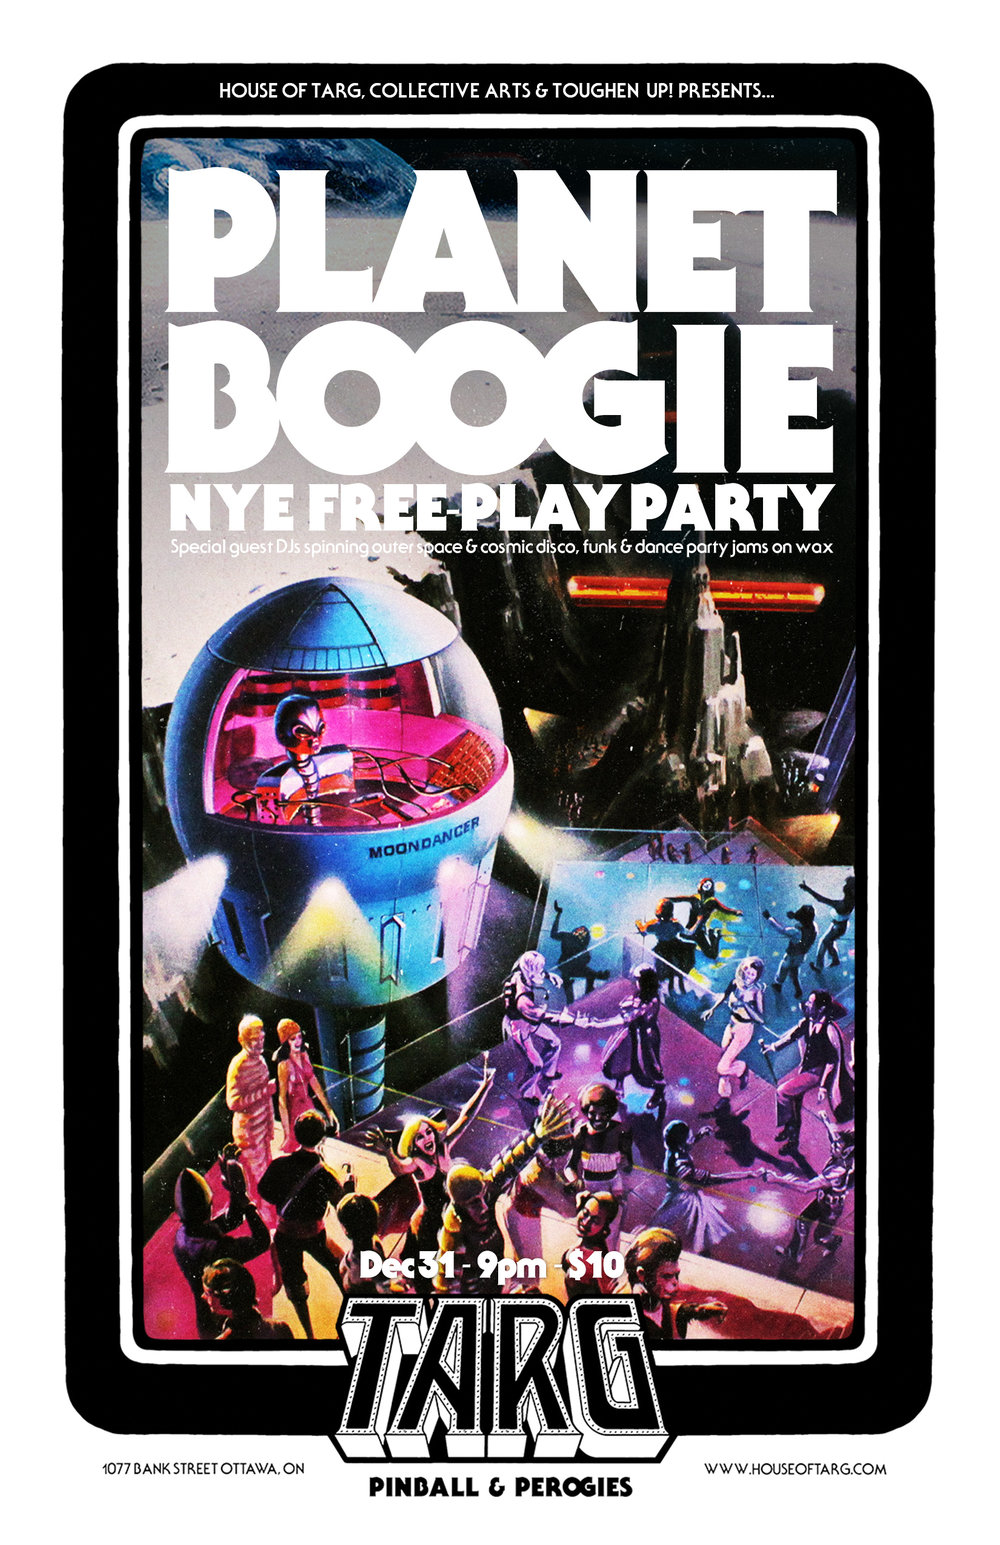 Sun Dec 21 PLANET BOOGIE SPACE DISCO FREE-PLAY NYE PARTY!.  $10 gets you the best NYE deal in the cosmos. Expect familiar and rare space jamz by Commander KJ and his funky guest DJ crew. Oh ya and all the vid games & pinball machines will be on freeplay.   more info here